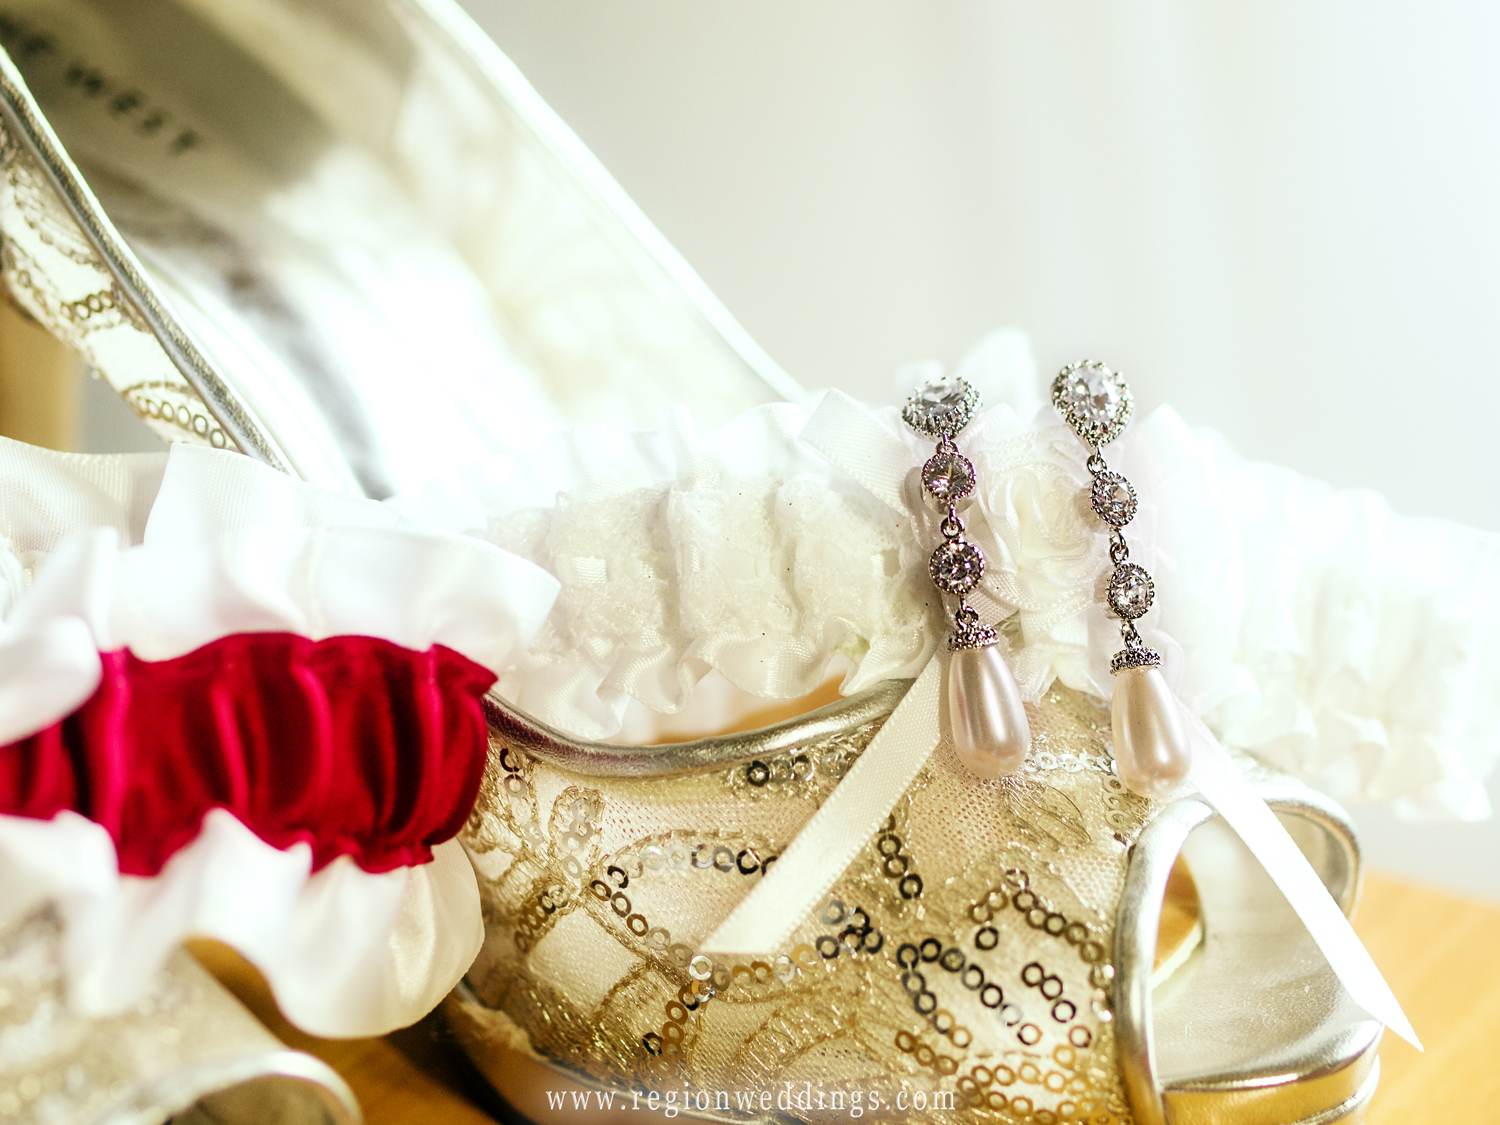 The bride's earrings are draped over her garter and her shoes with her wedding dress in the background.